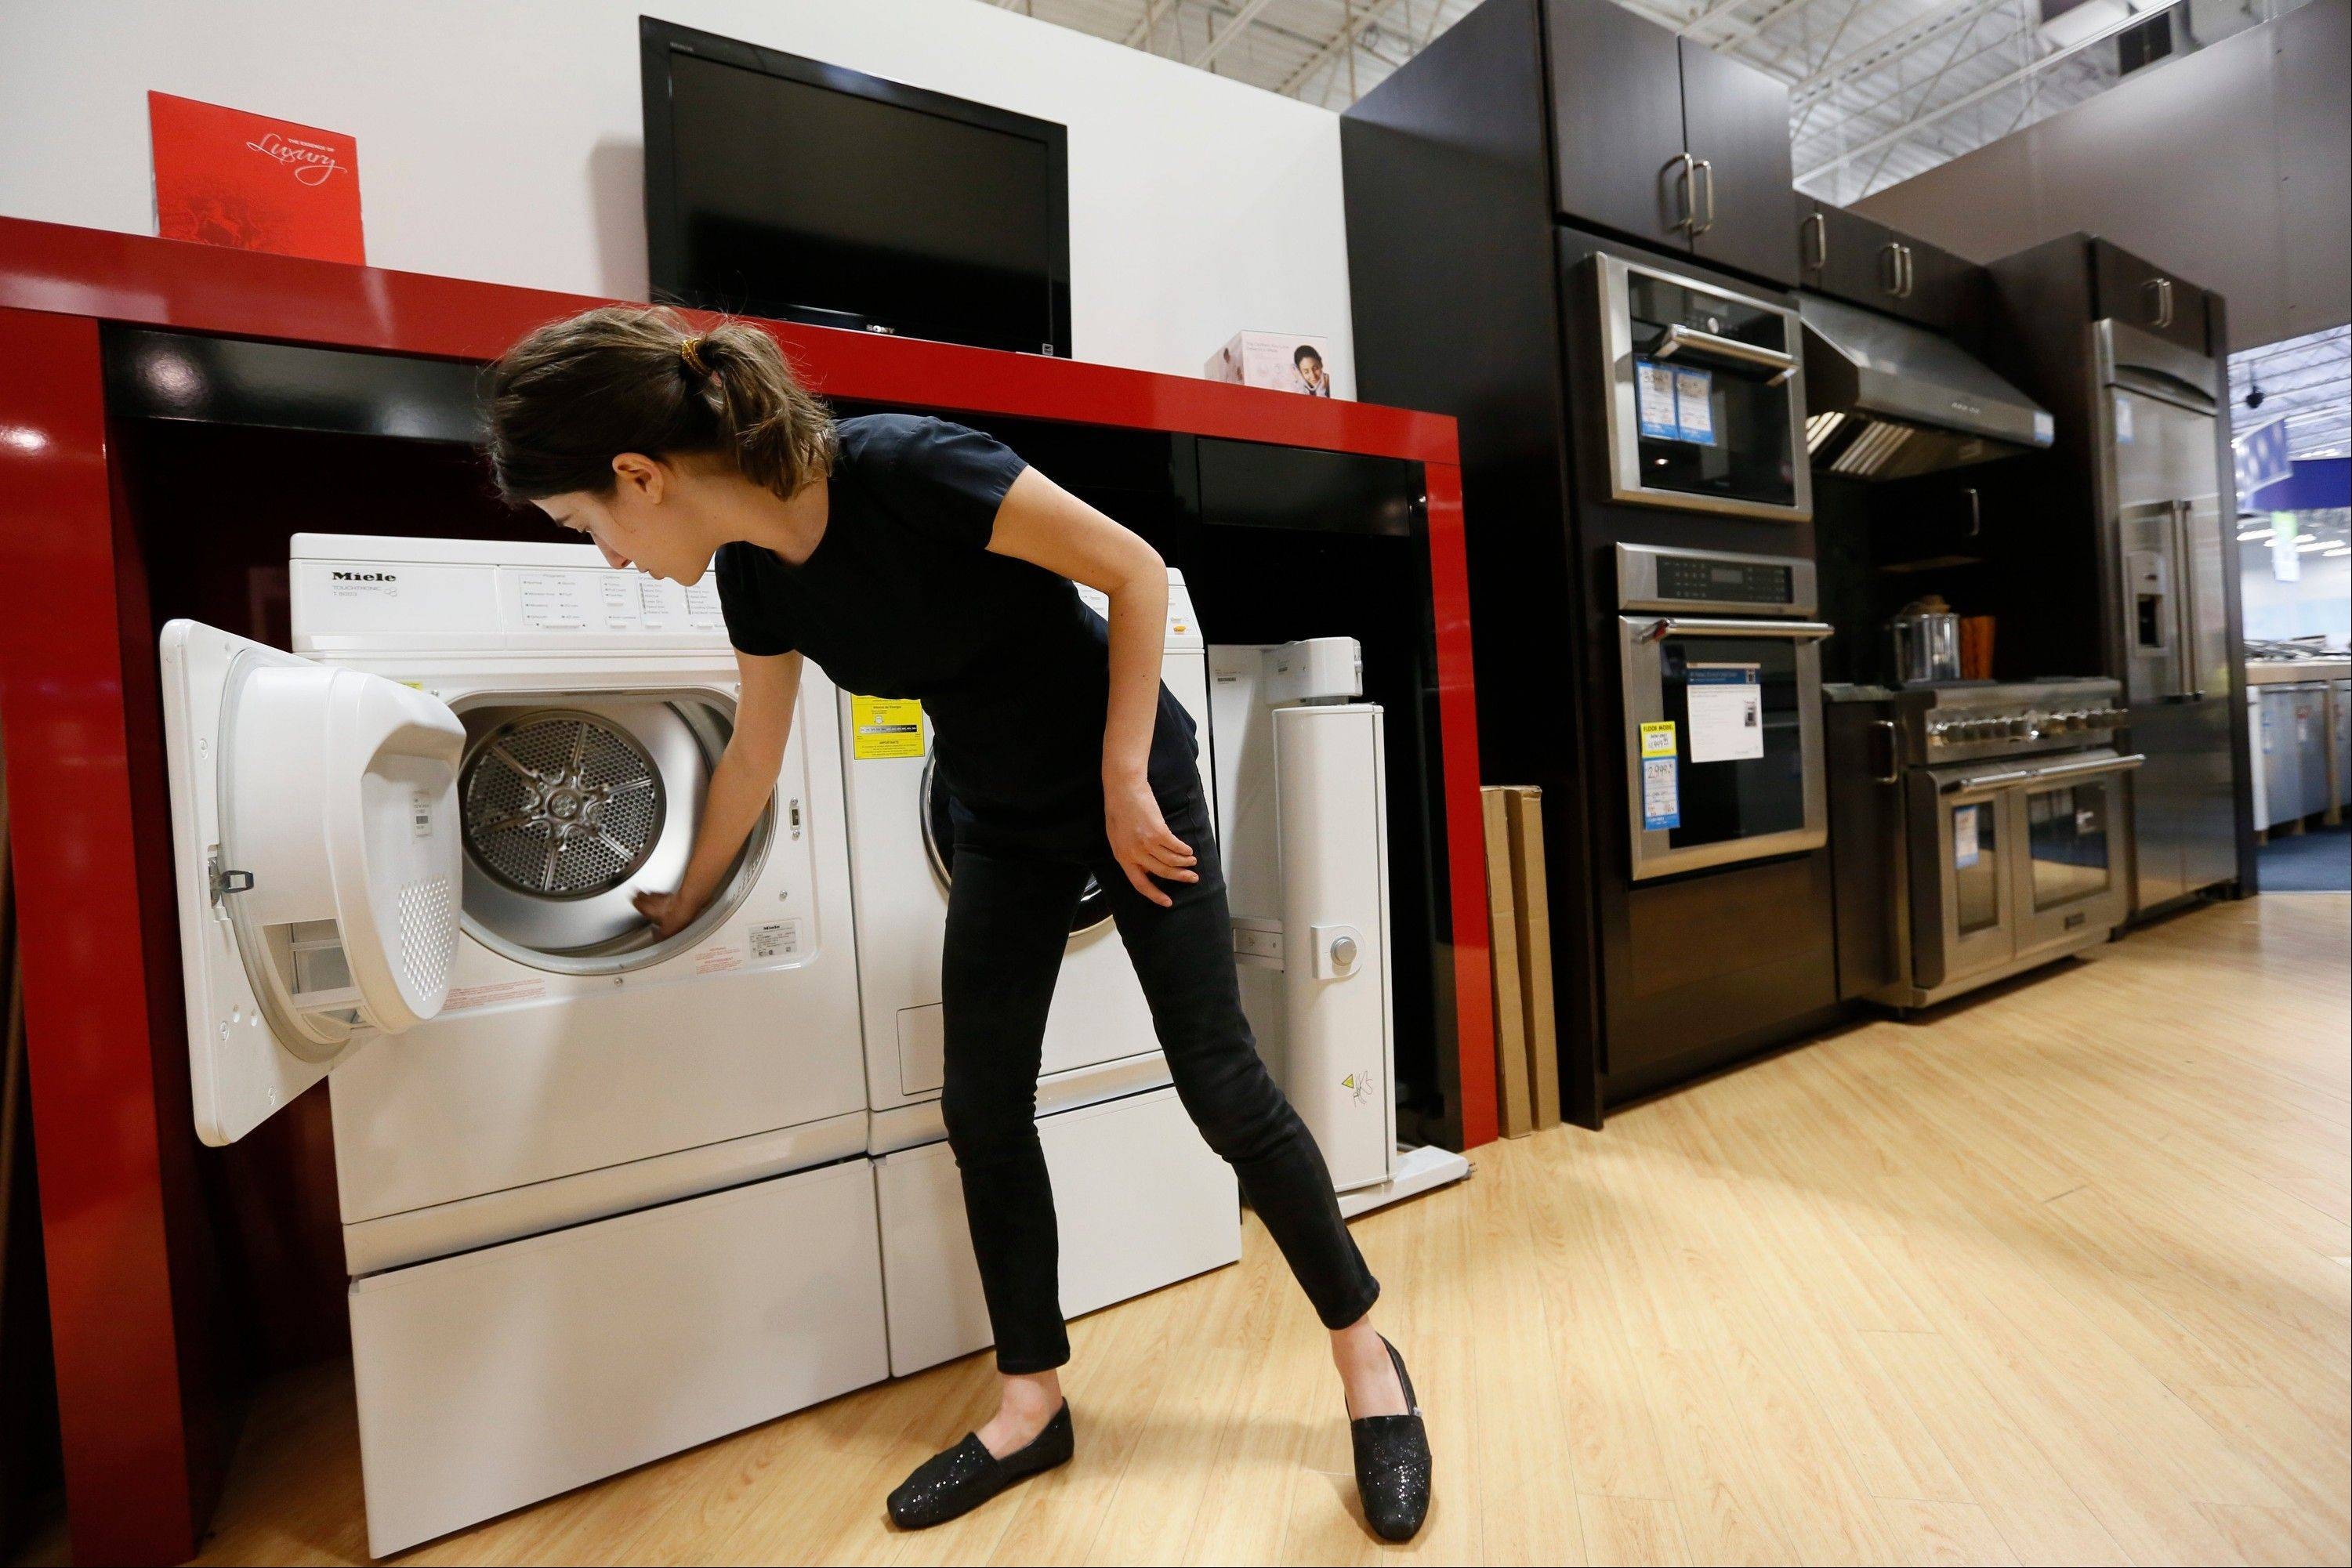 Miele Account Manager Natasha Feldman showcases Miele washer and dryer energy efficient appliances at the Pacific Sales at the Best Buy store in Glendale, Calif.